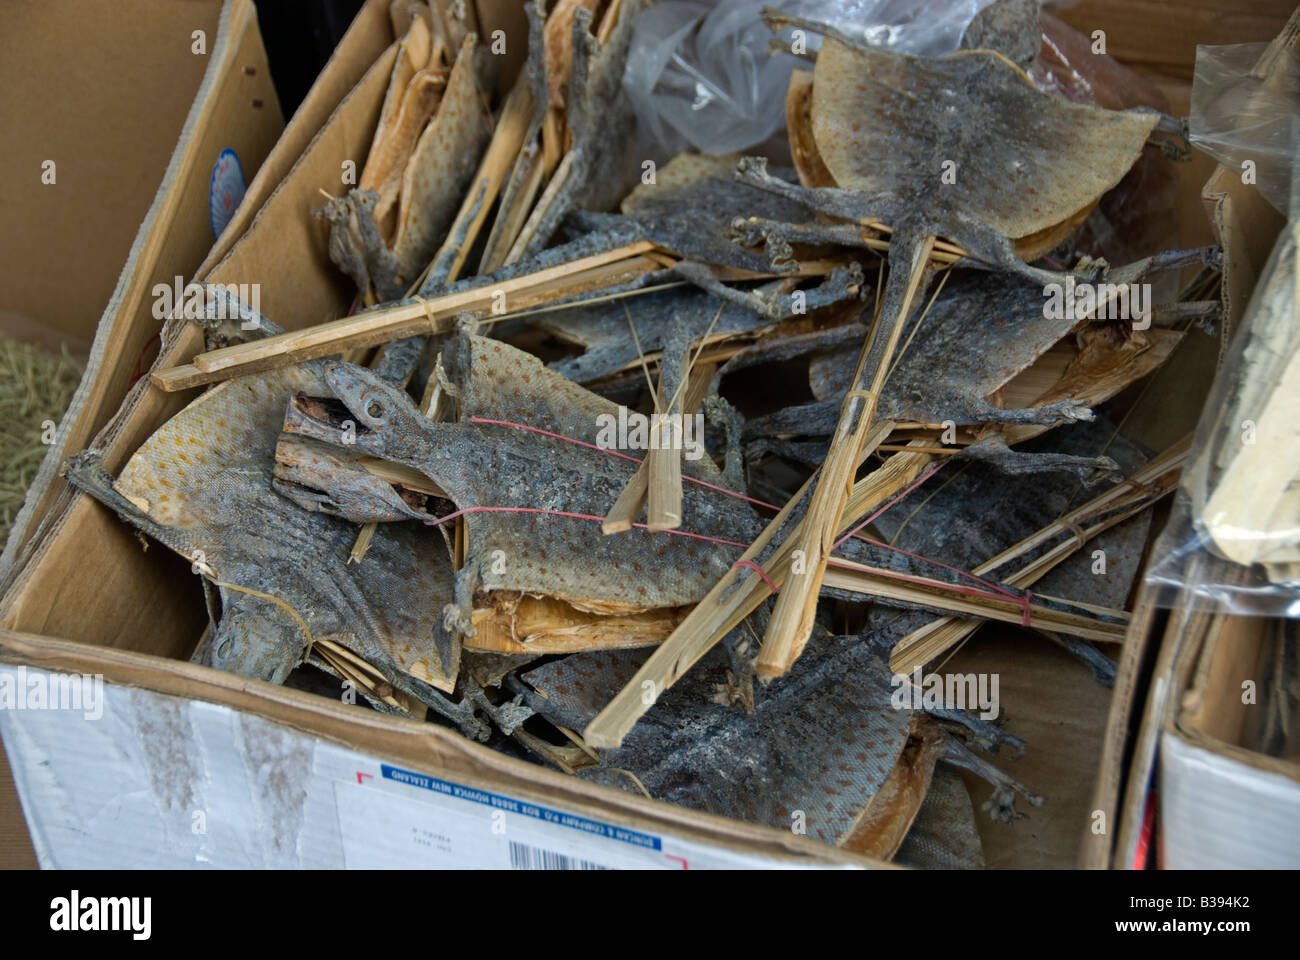 Chinese herbal products - Dried Lizards In Chinese Herbal Medicine Shop Hong Kong China Stock Image